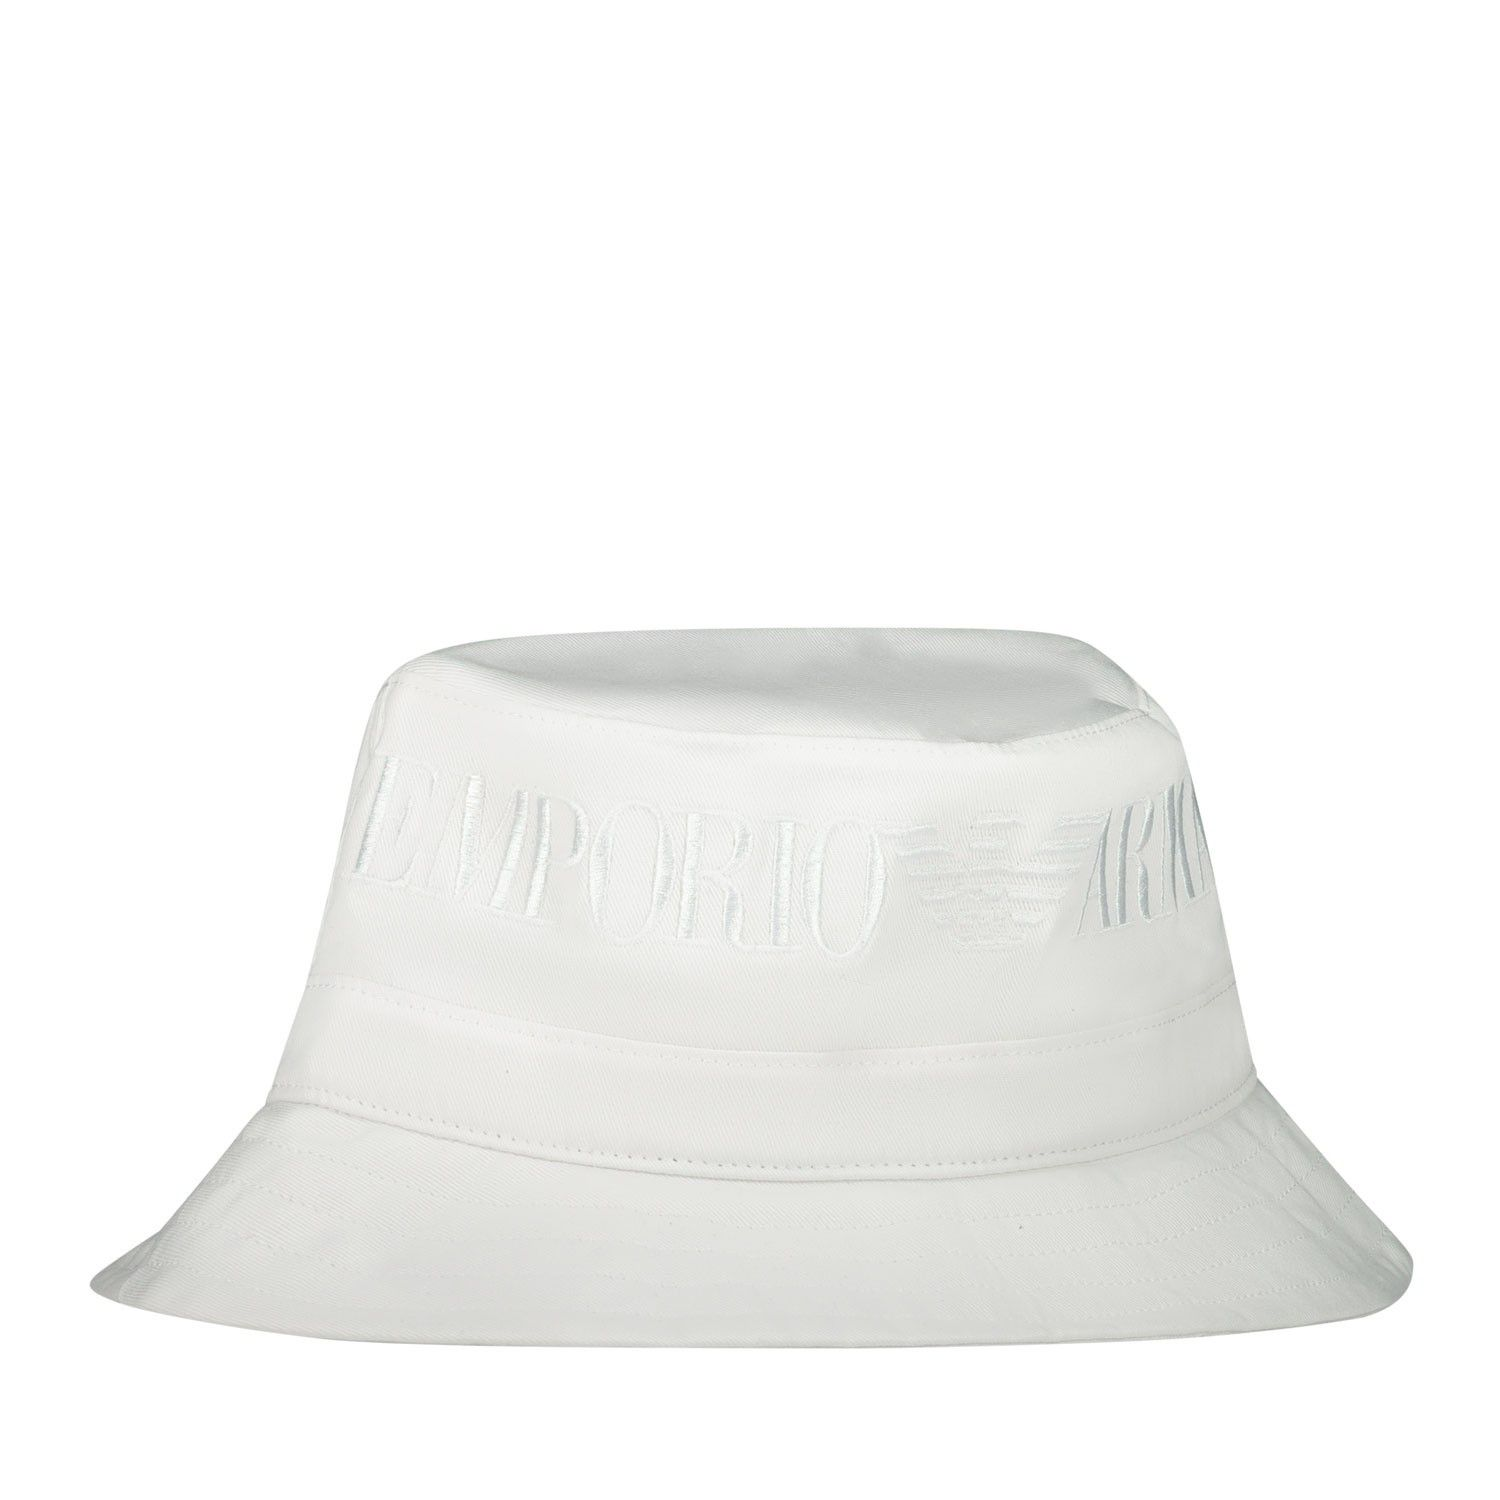 Picture of Armani 404607 kids hat white